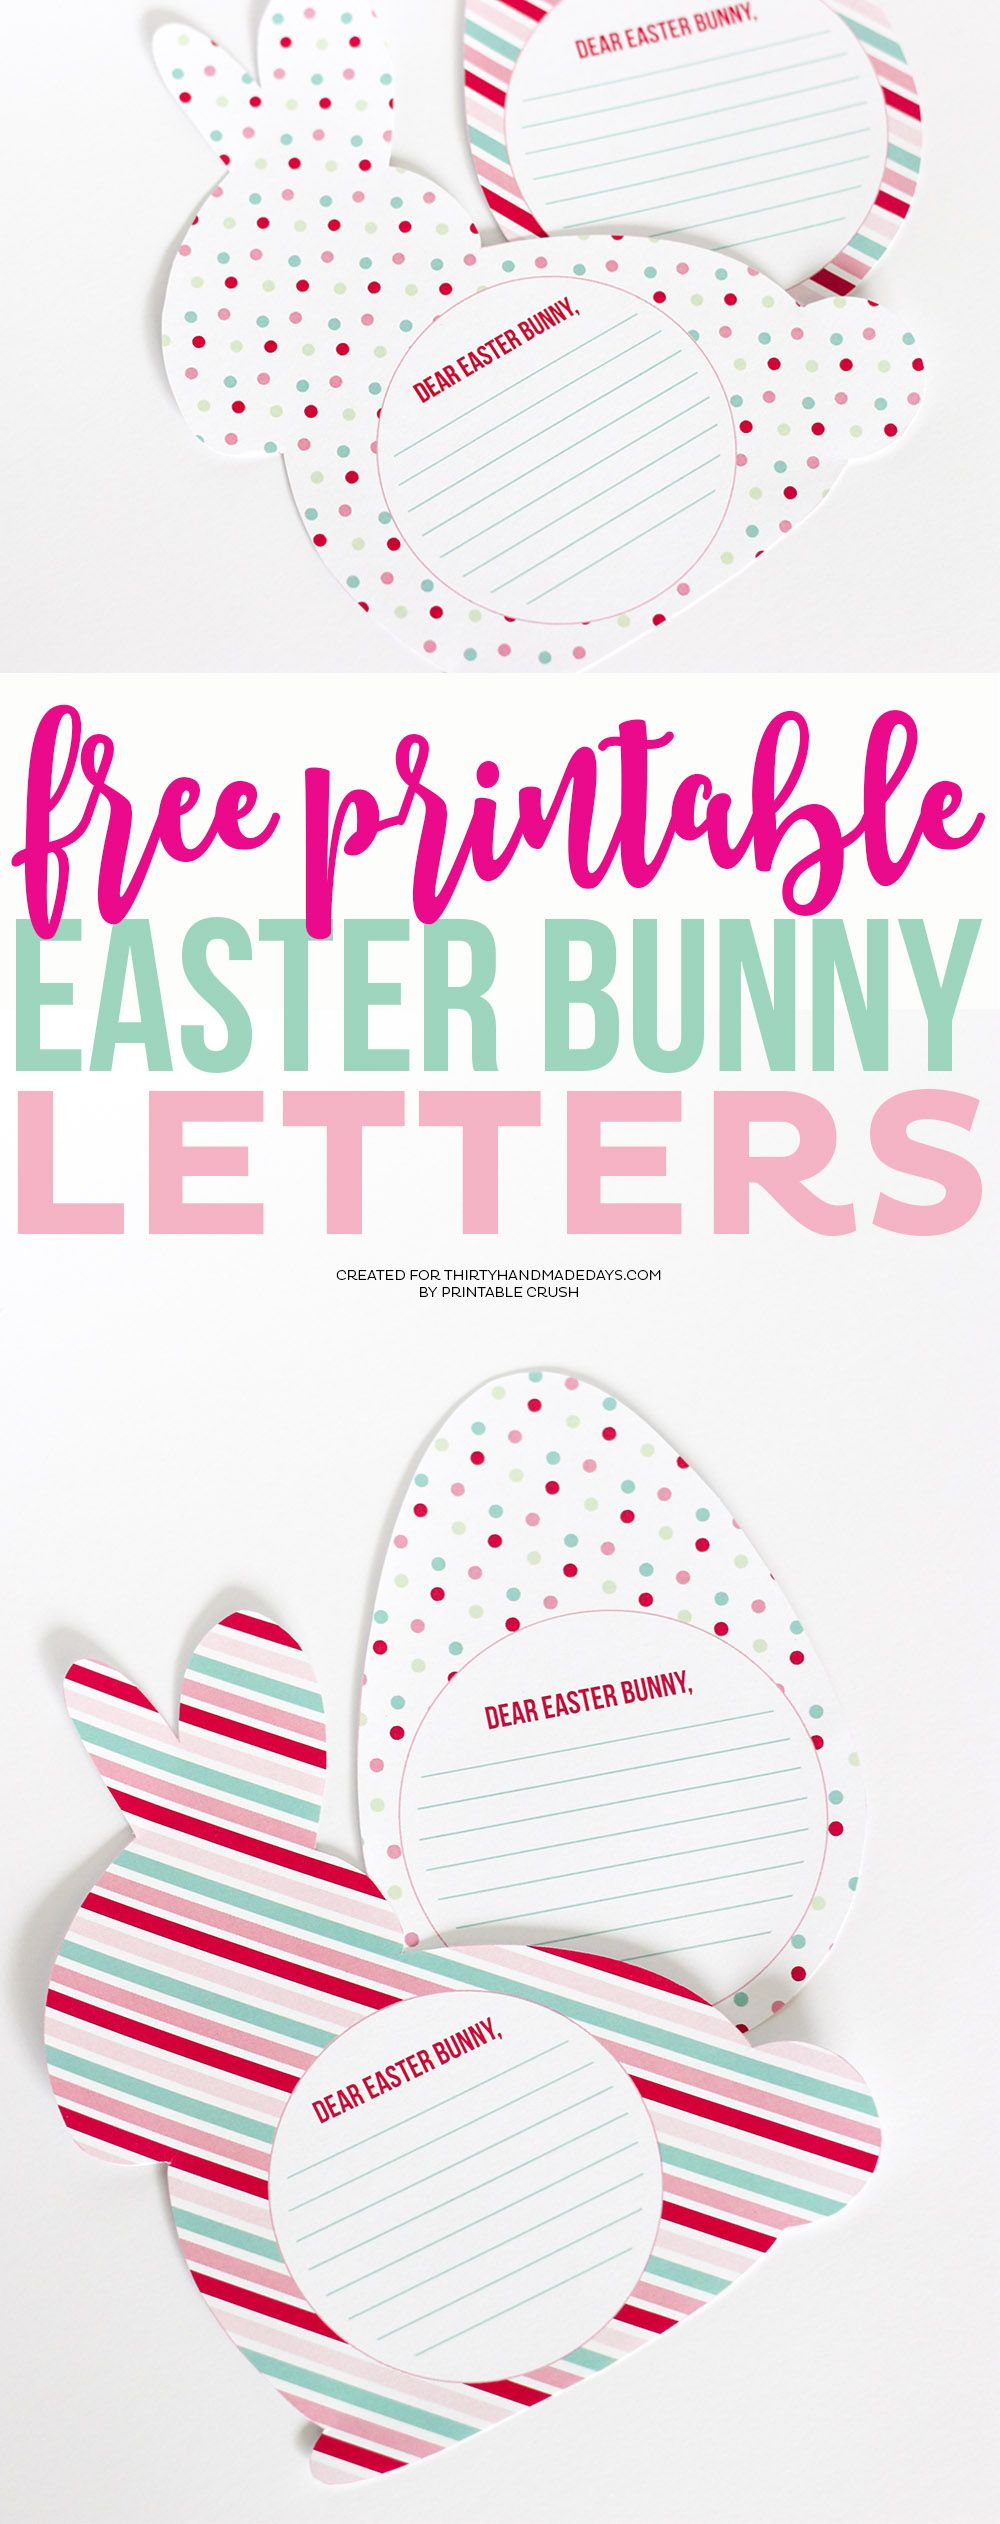 15+ Easter bunny letter to child ideas in 2021